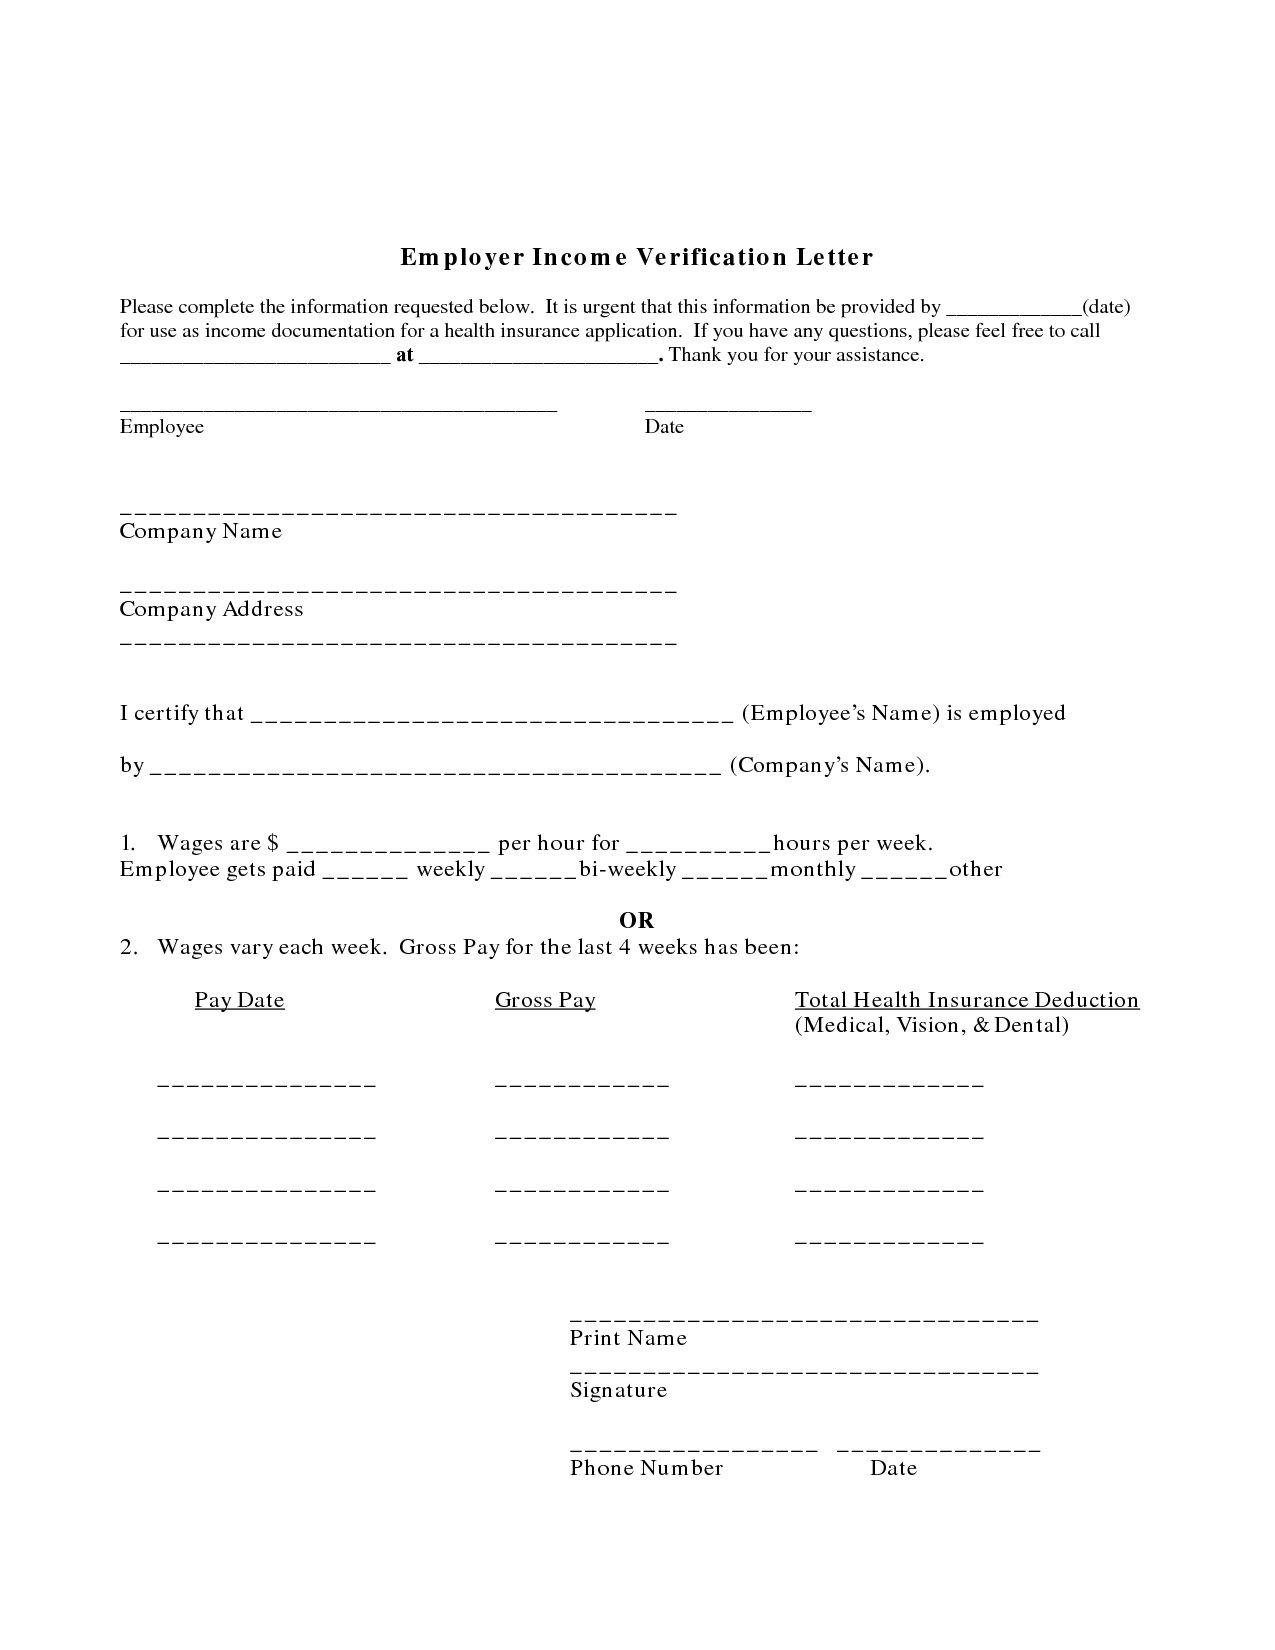 001 Imposing Income Verification Letter Template Example  Word From Employer Proof OfFull